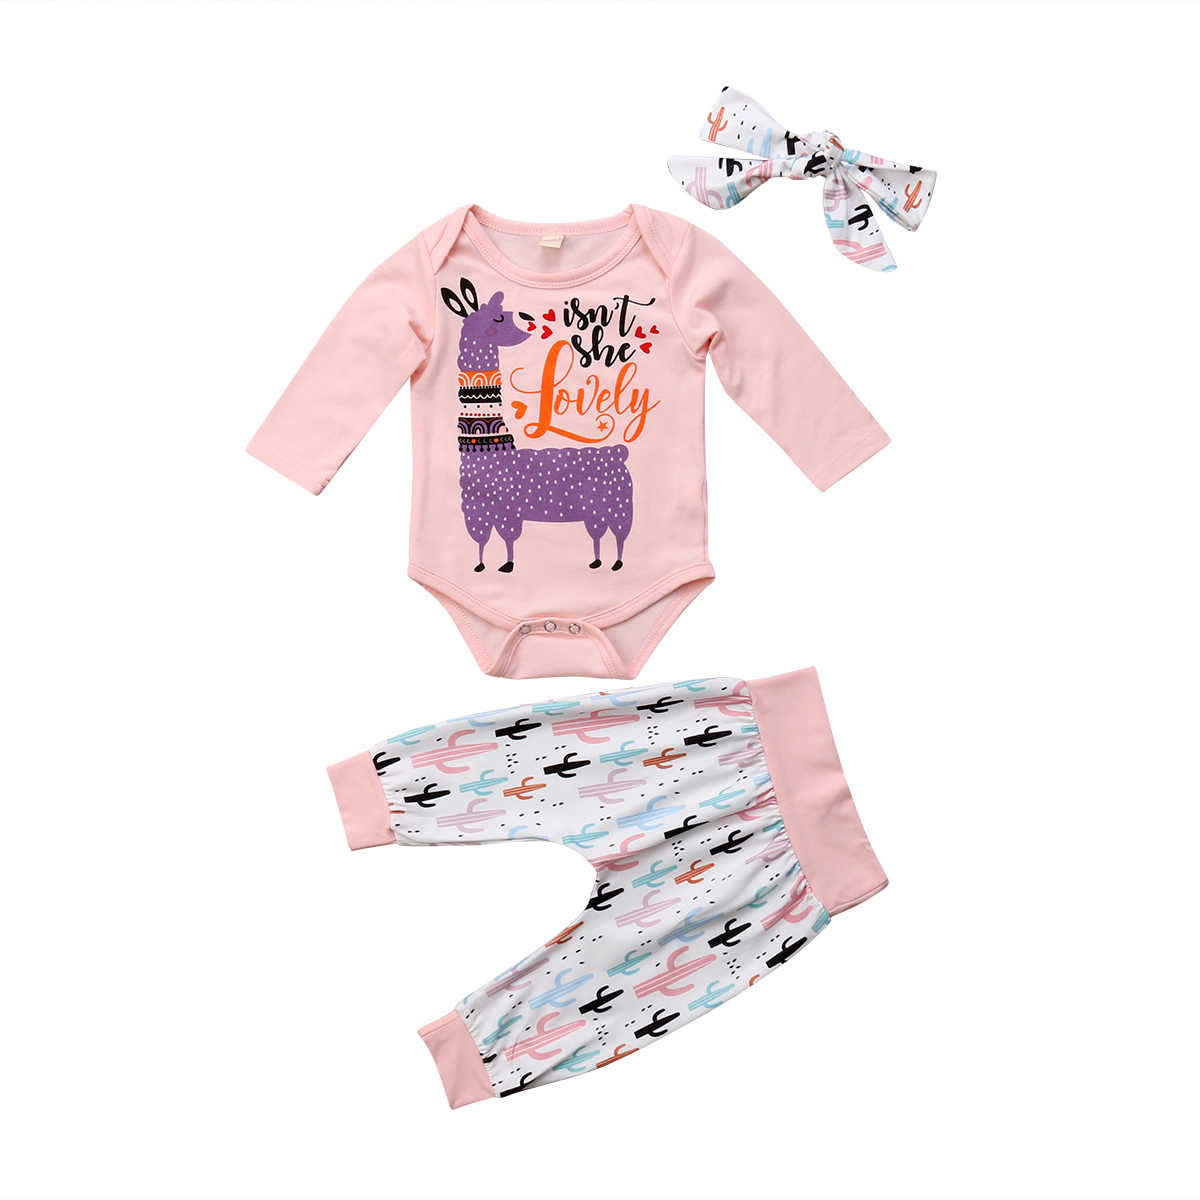 ca2d01eefdbd Detail Feedback Questions about Infant Toddler Baby Girl Boy Clothes Long  Sleeve Alpaca Llama Print Romper Tops+Pants+ Headhand Girls Clothing Outfits  3Pcs ...